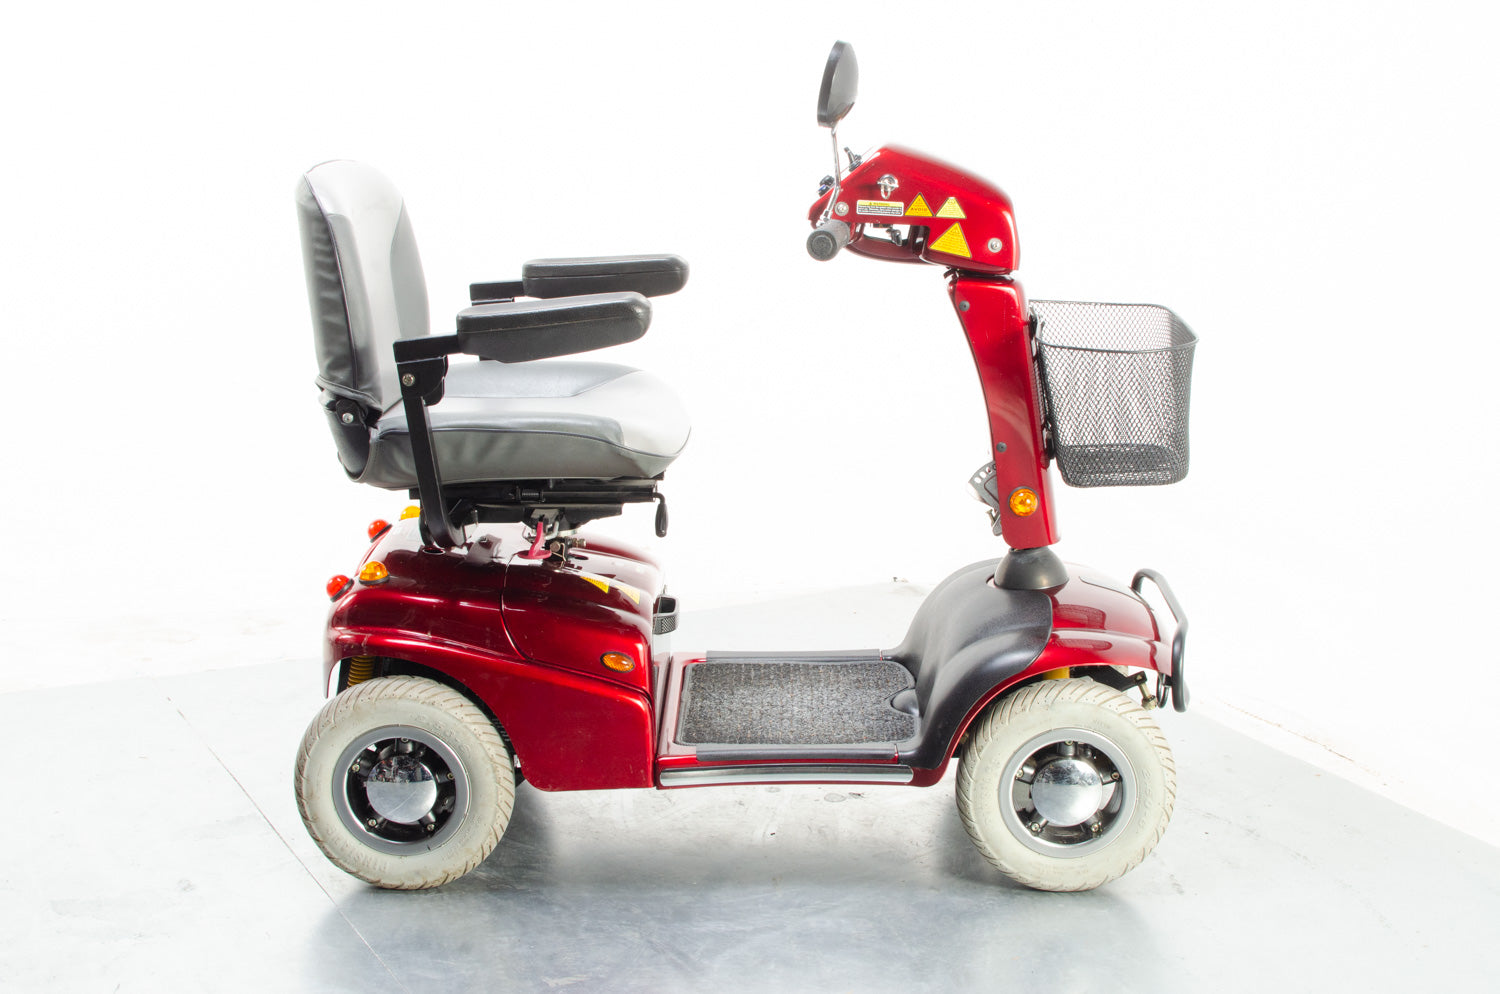 2010 Rascal 650 6mph Electric Mobility Scooter Second Hand Mid Size Red